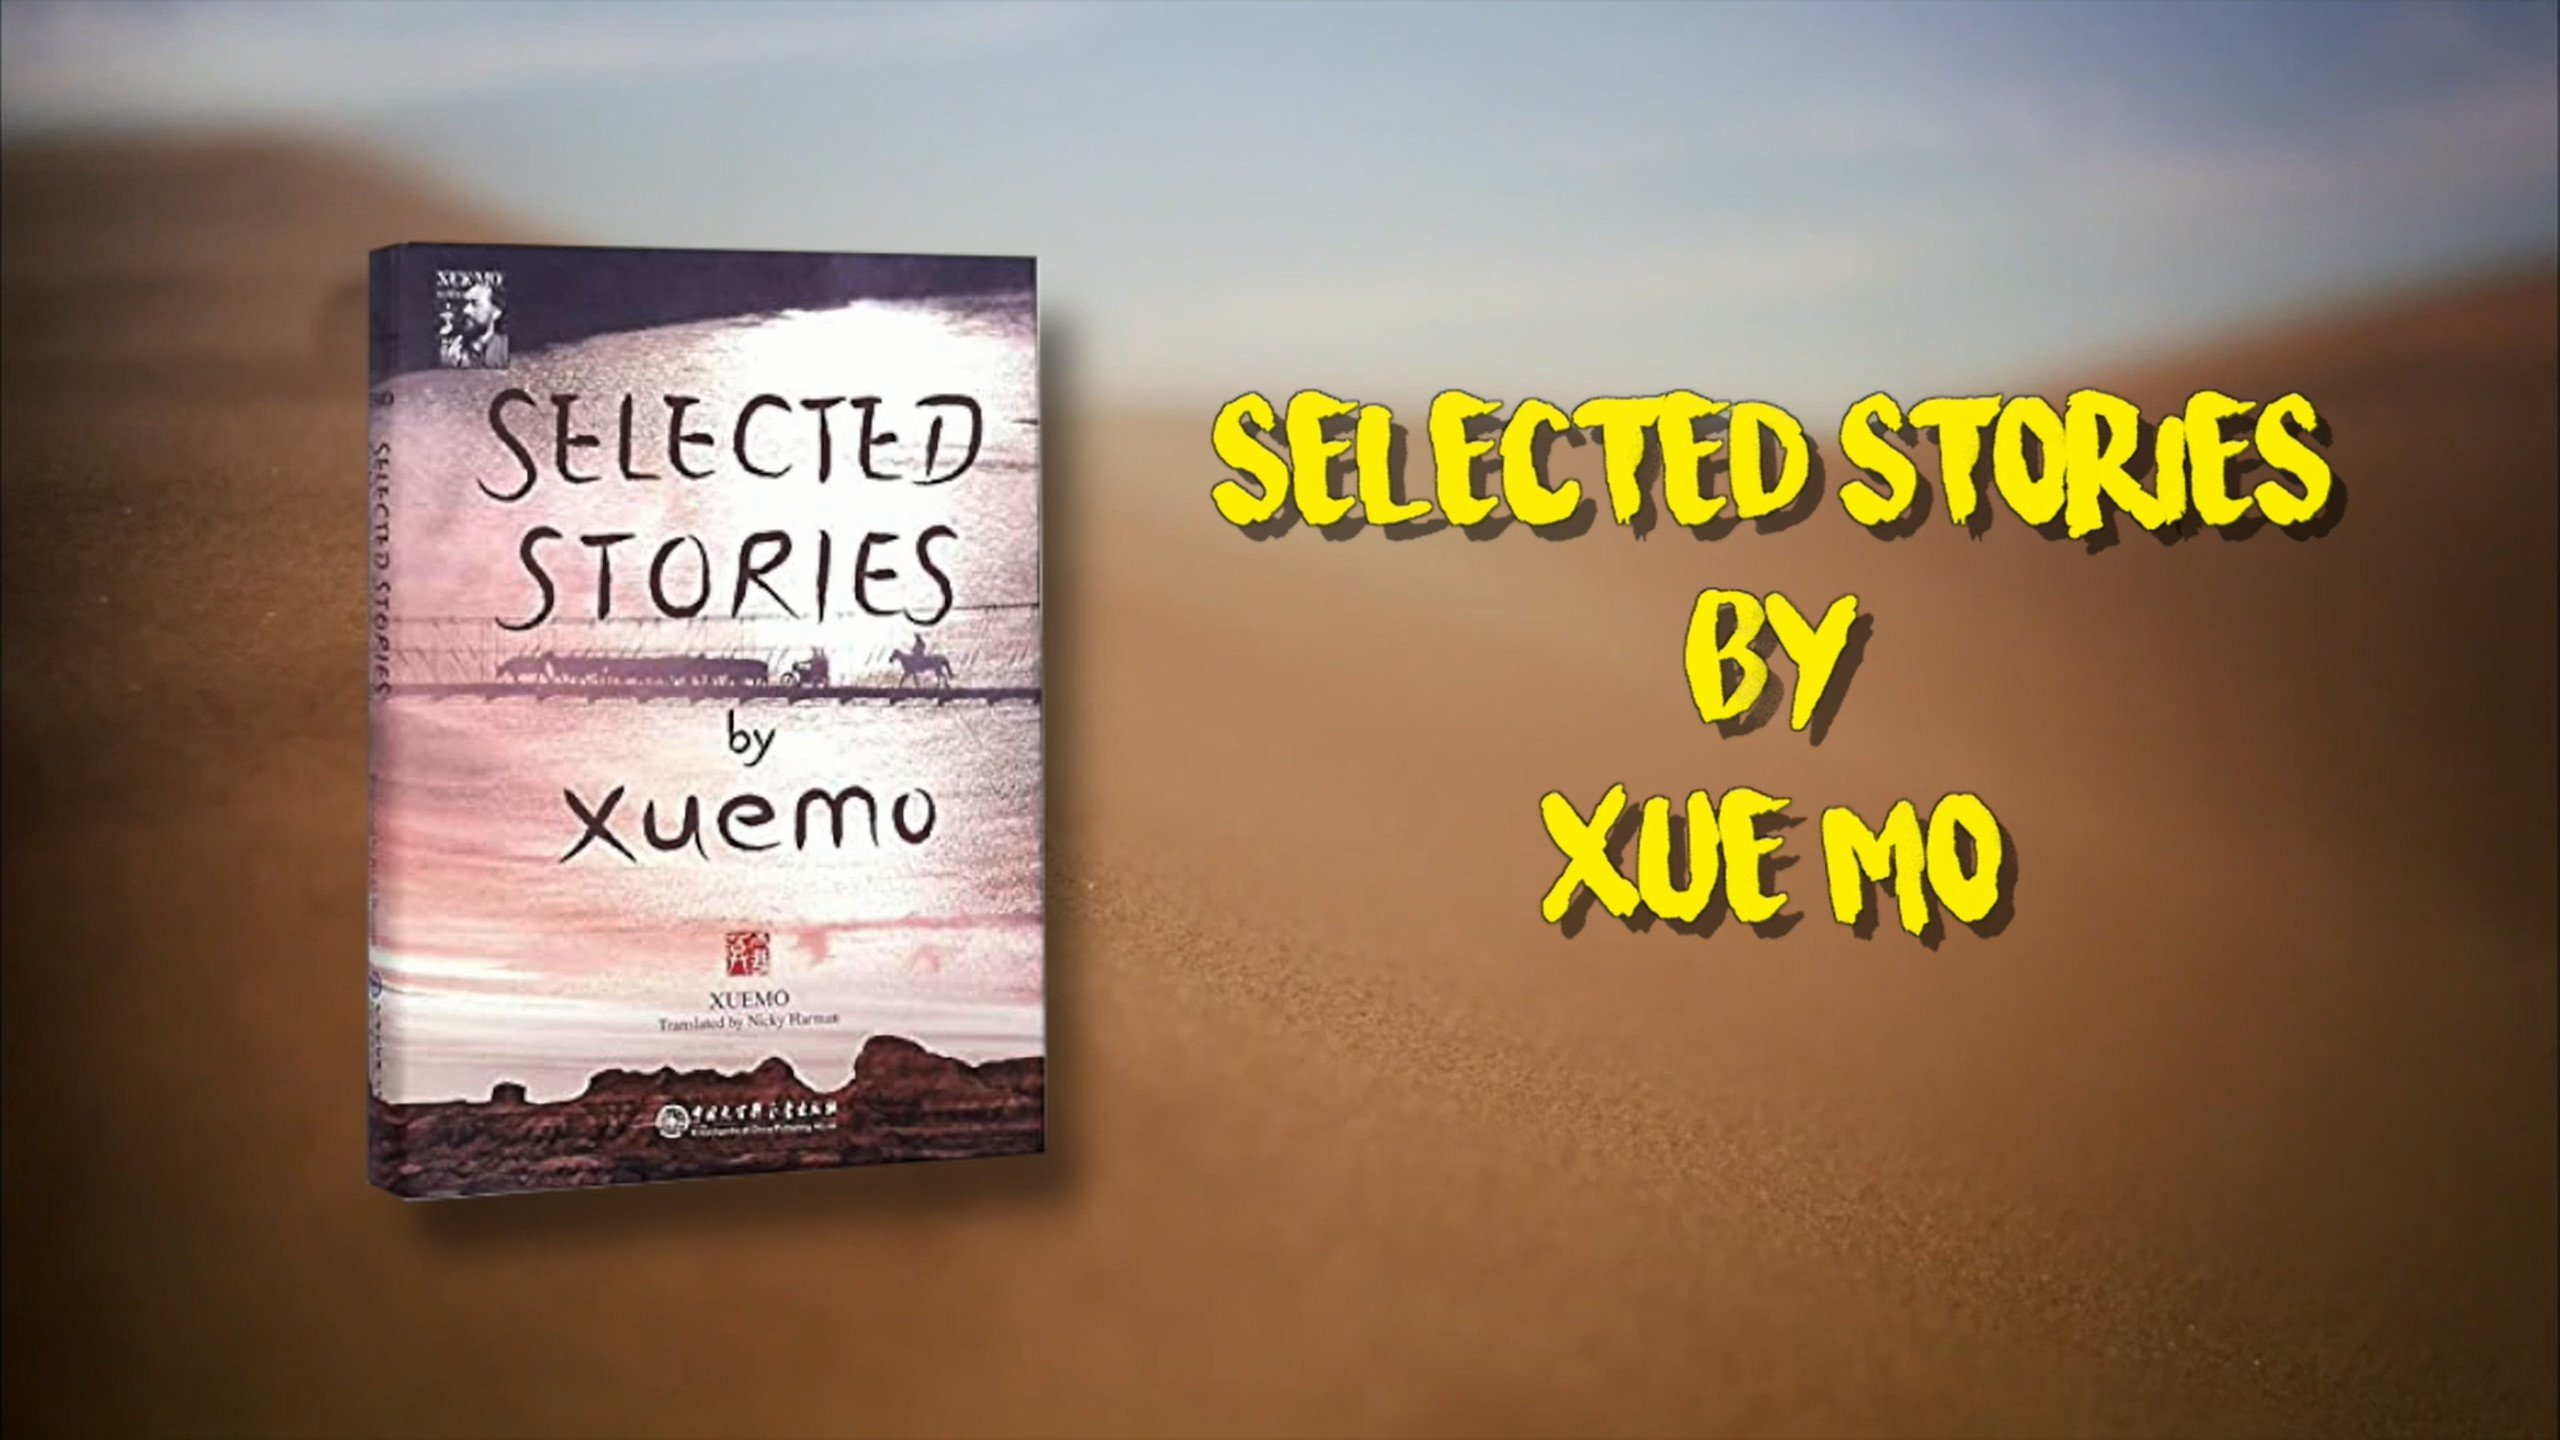 Selected Stories by Xuemo